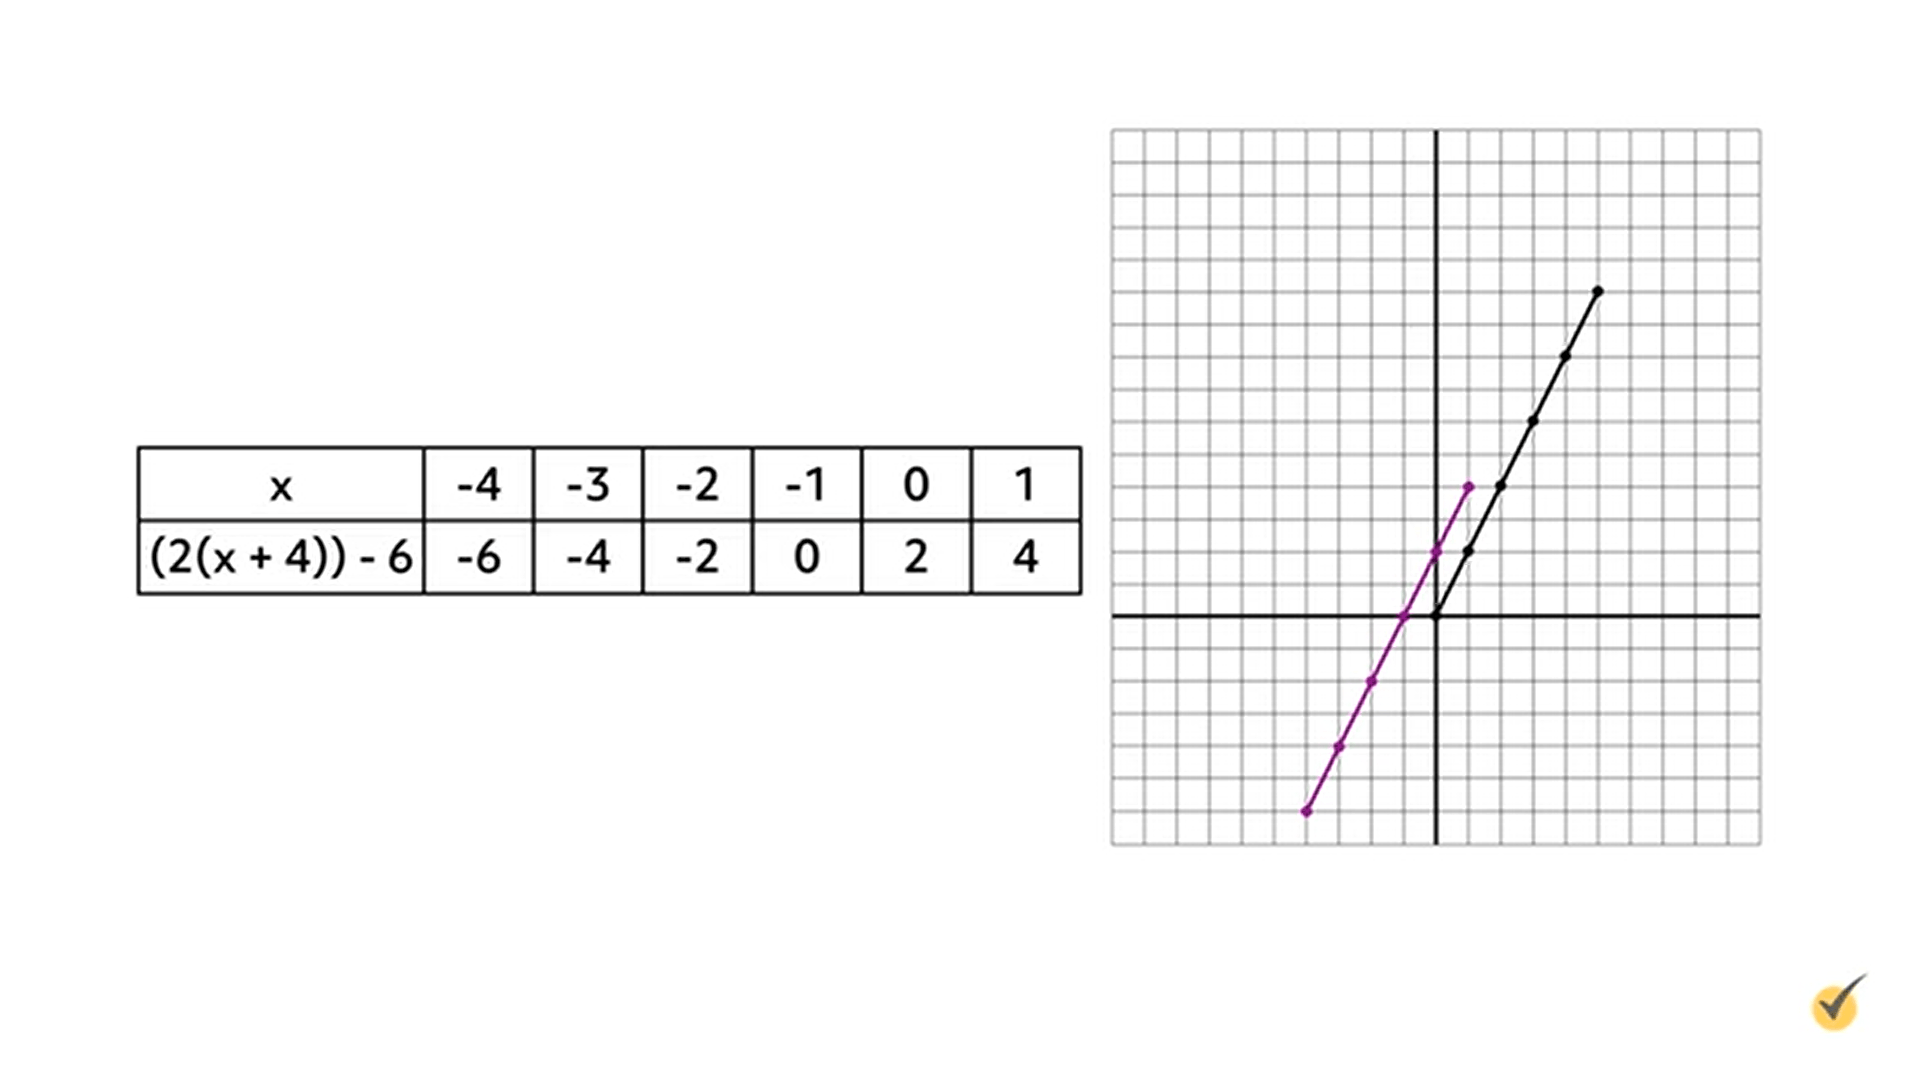 Image of table x over (2(x+4))-6 plotted on a graph.